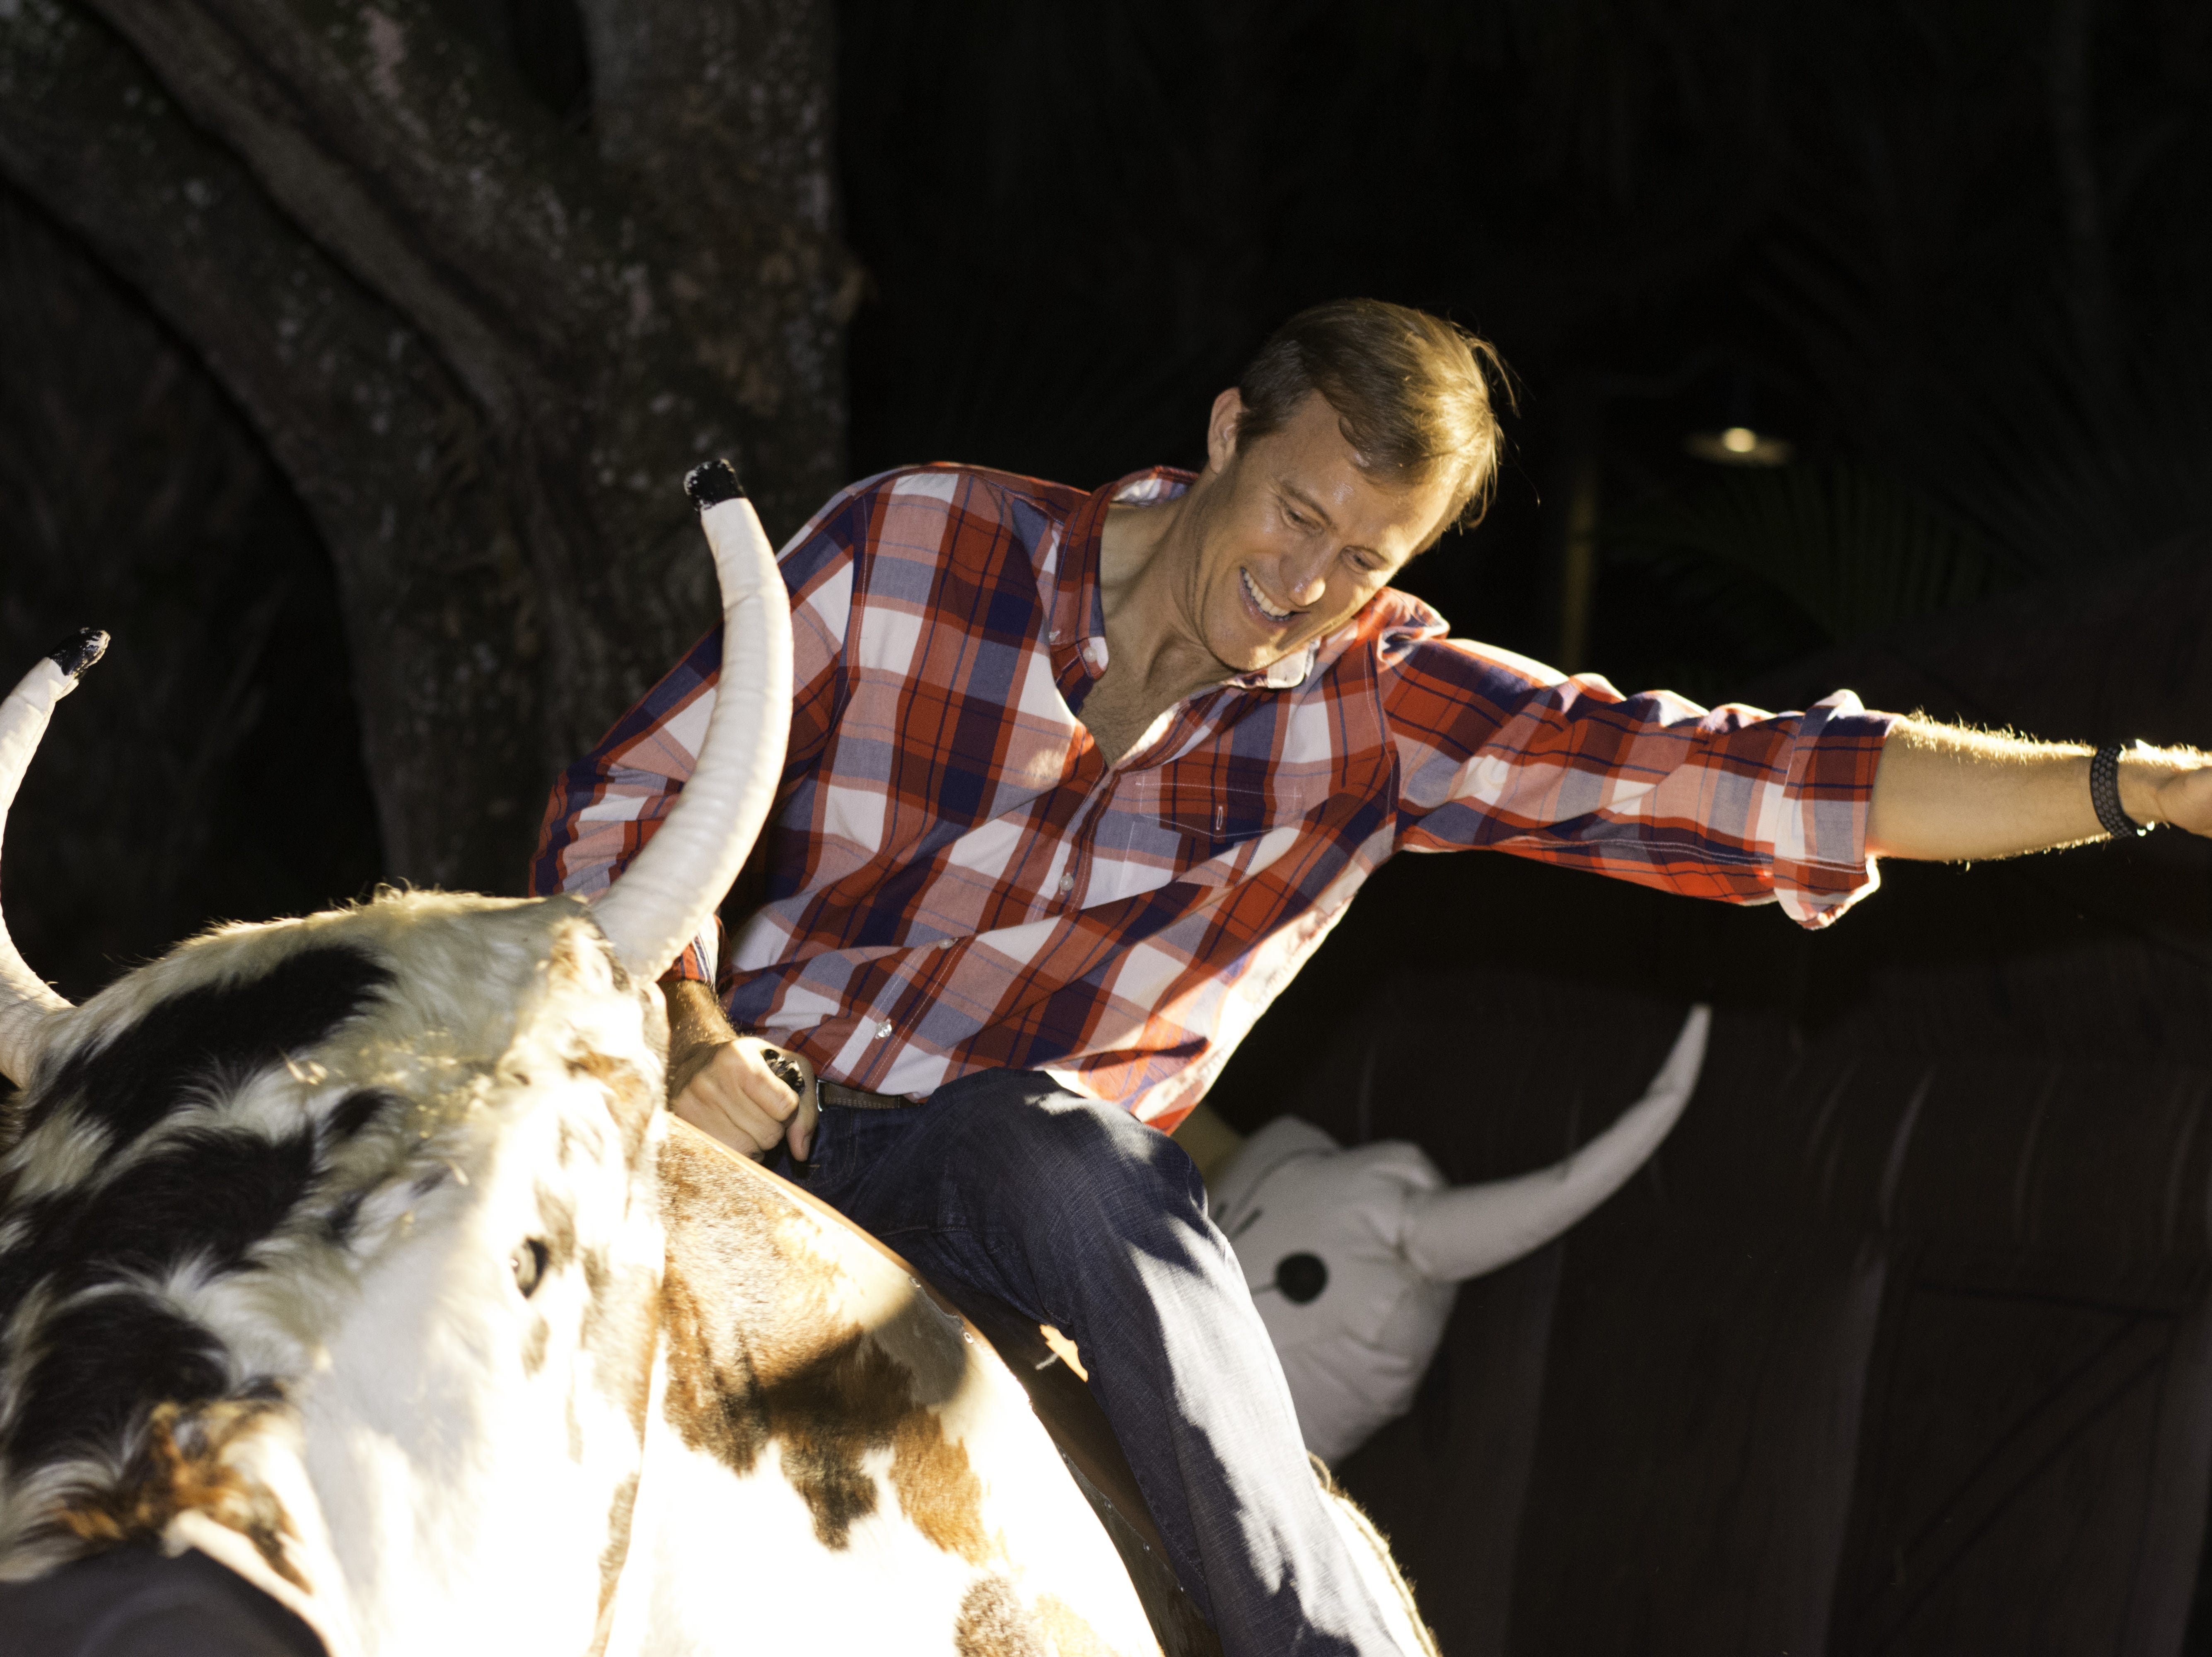 A guest attempts to not get bucked off the mechanical bull at Jazzoo in the country music venue.